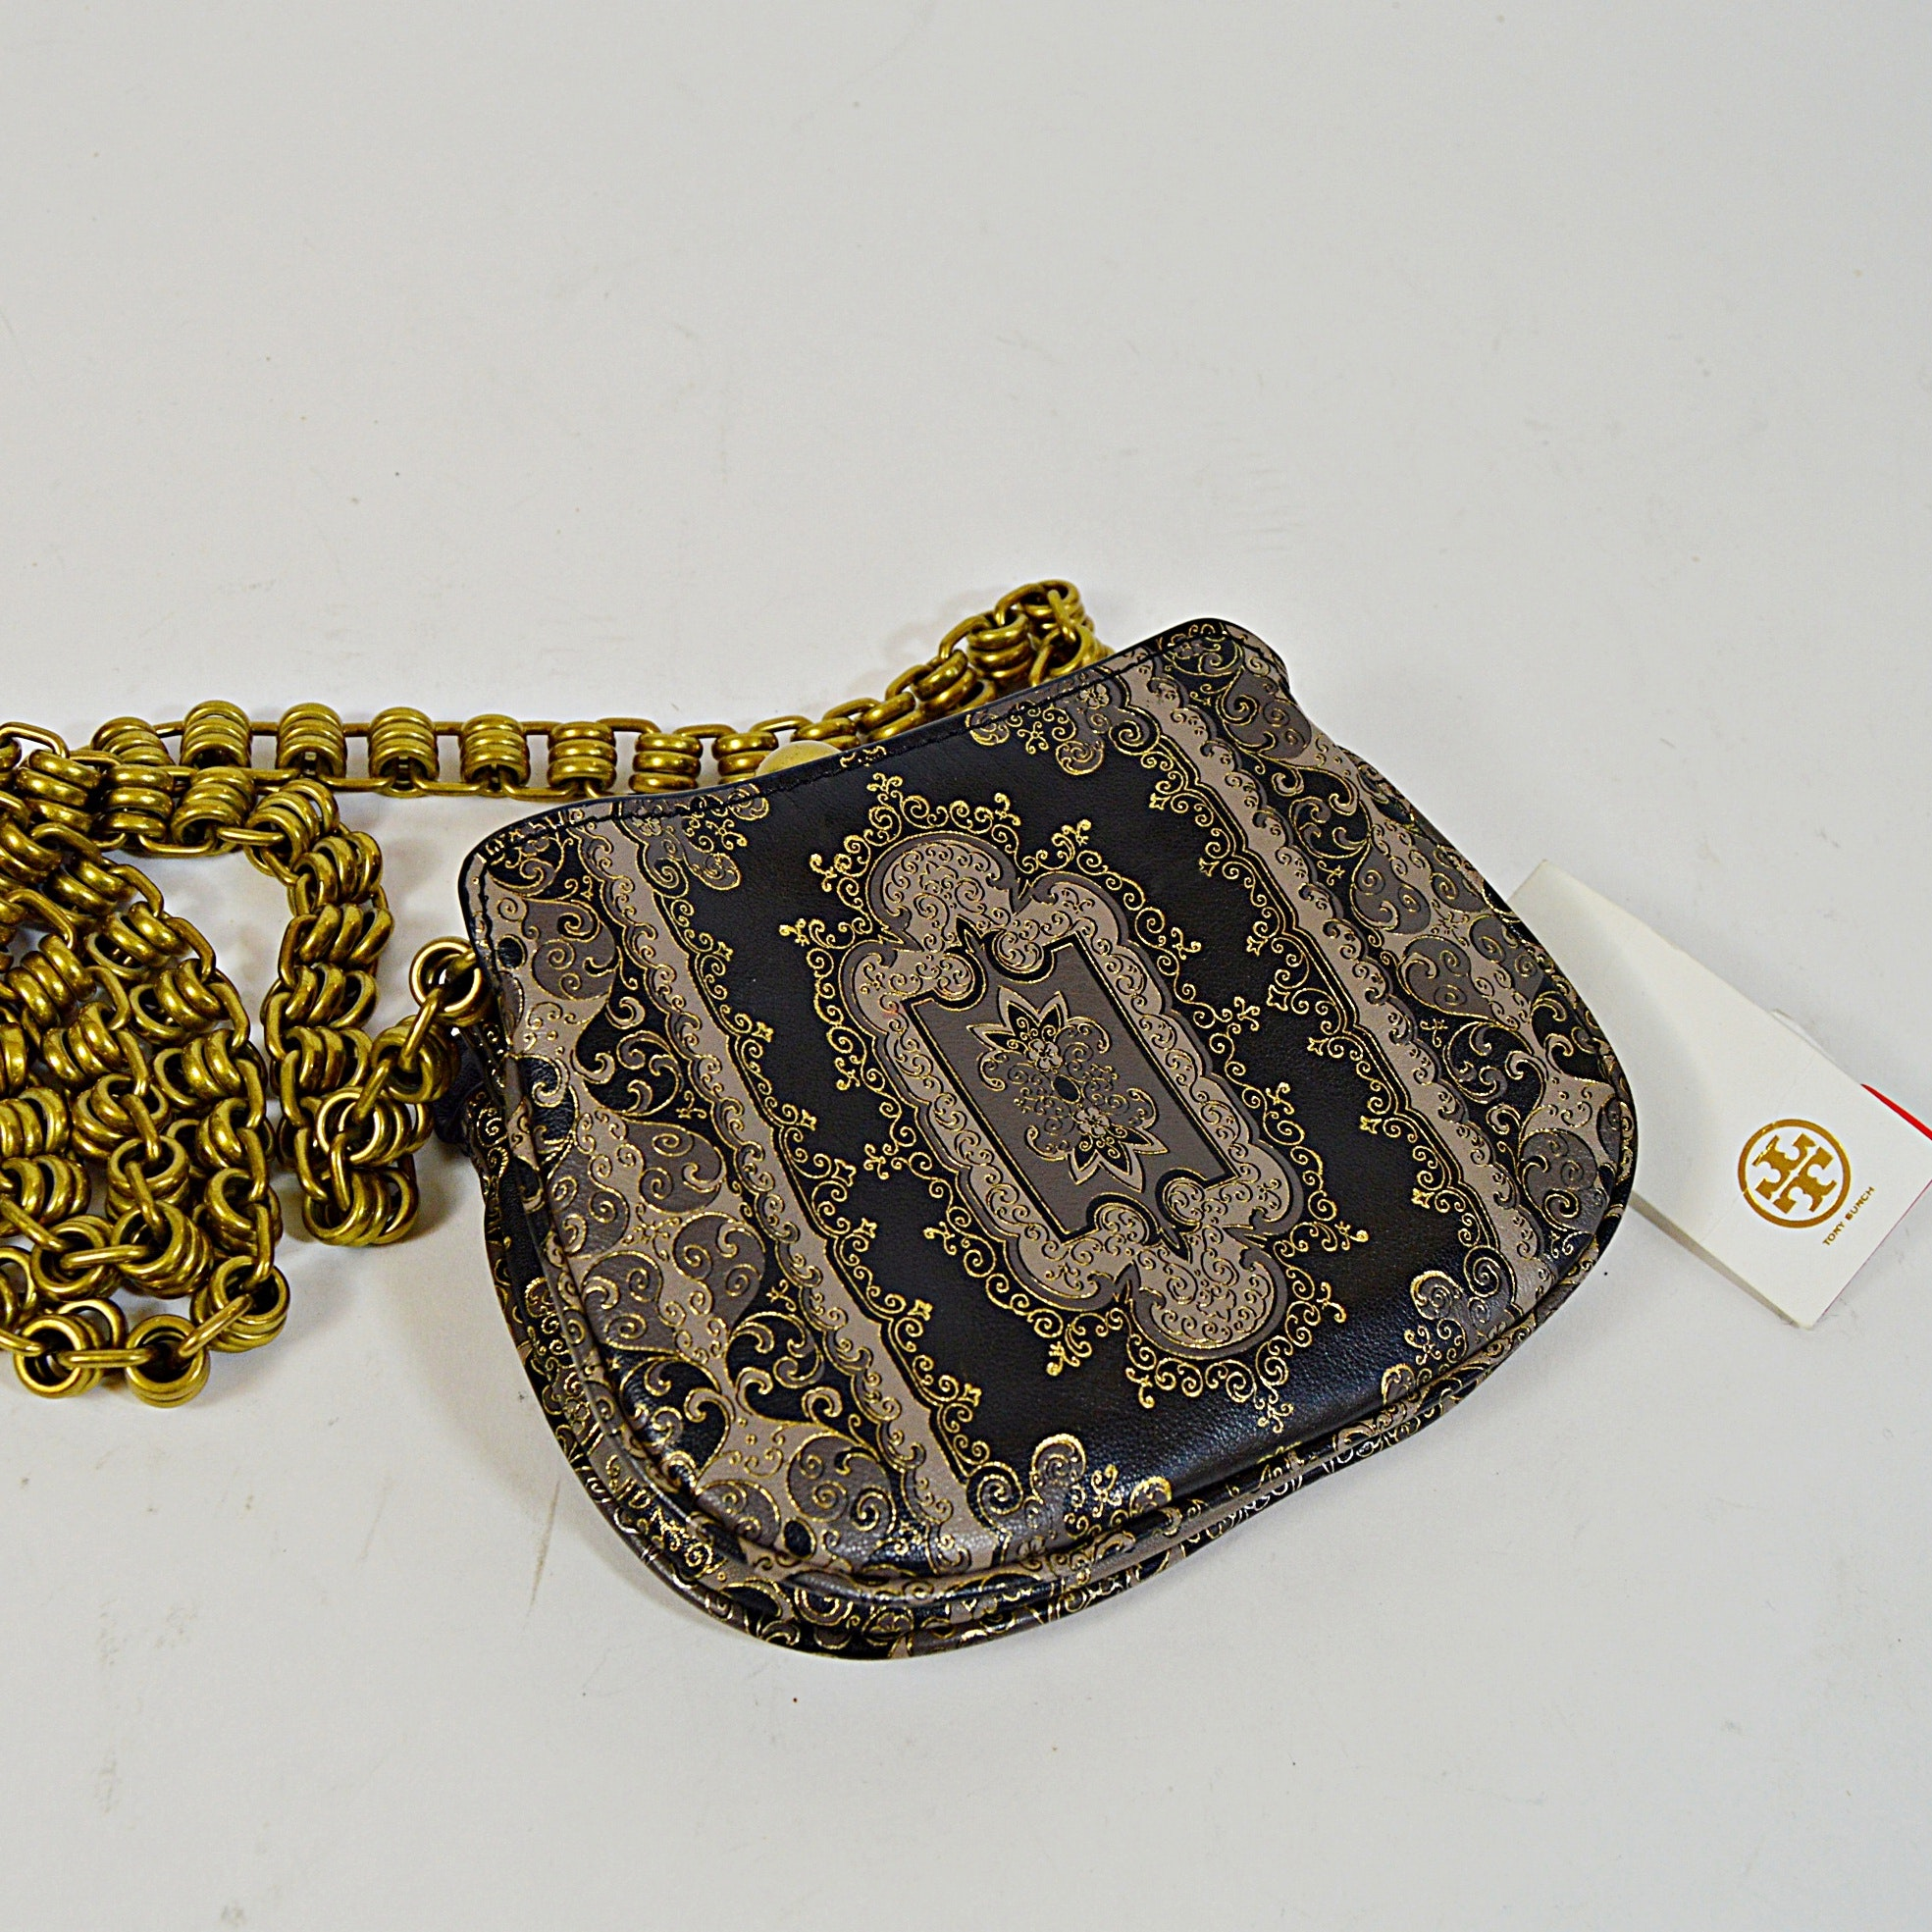 Tory Burch Tapestry Shoulder Bag, New-with-Tags